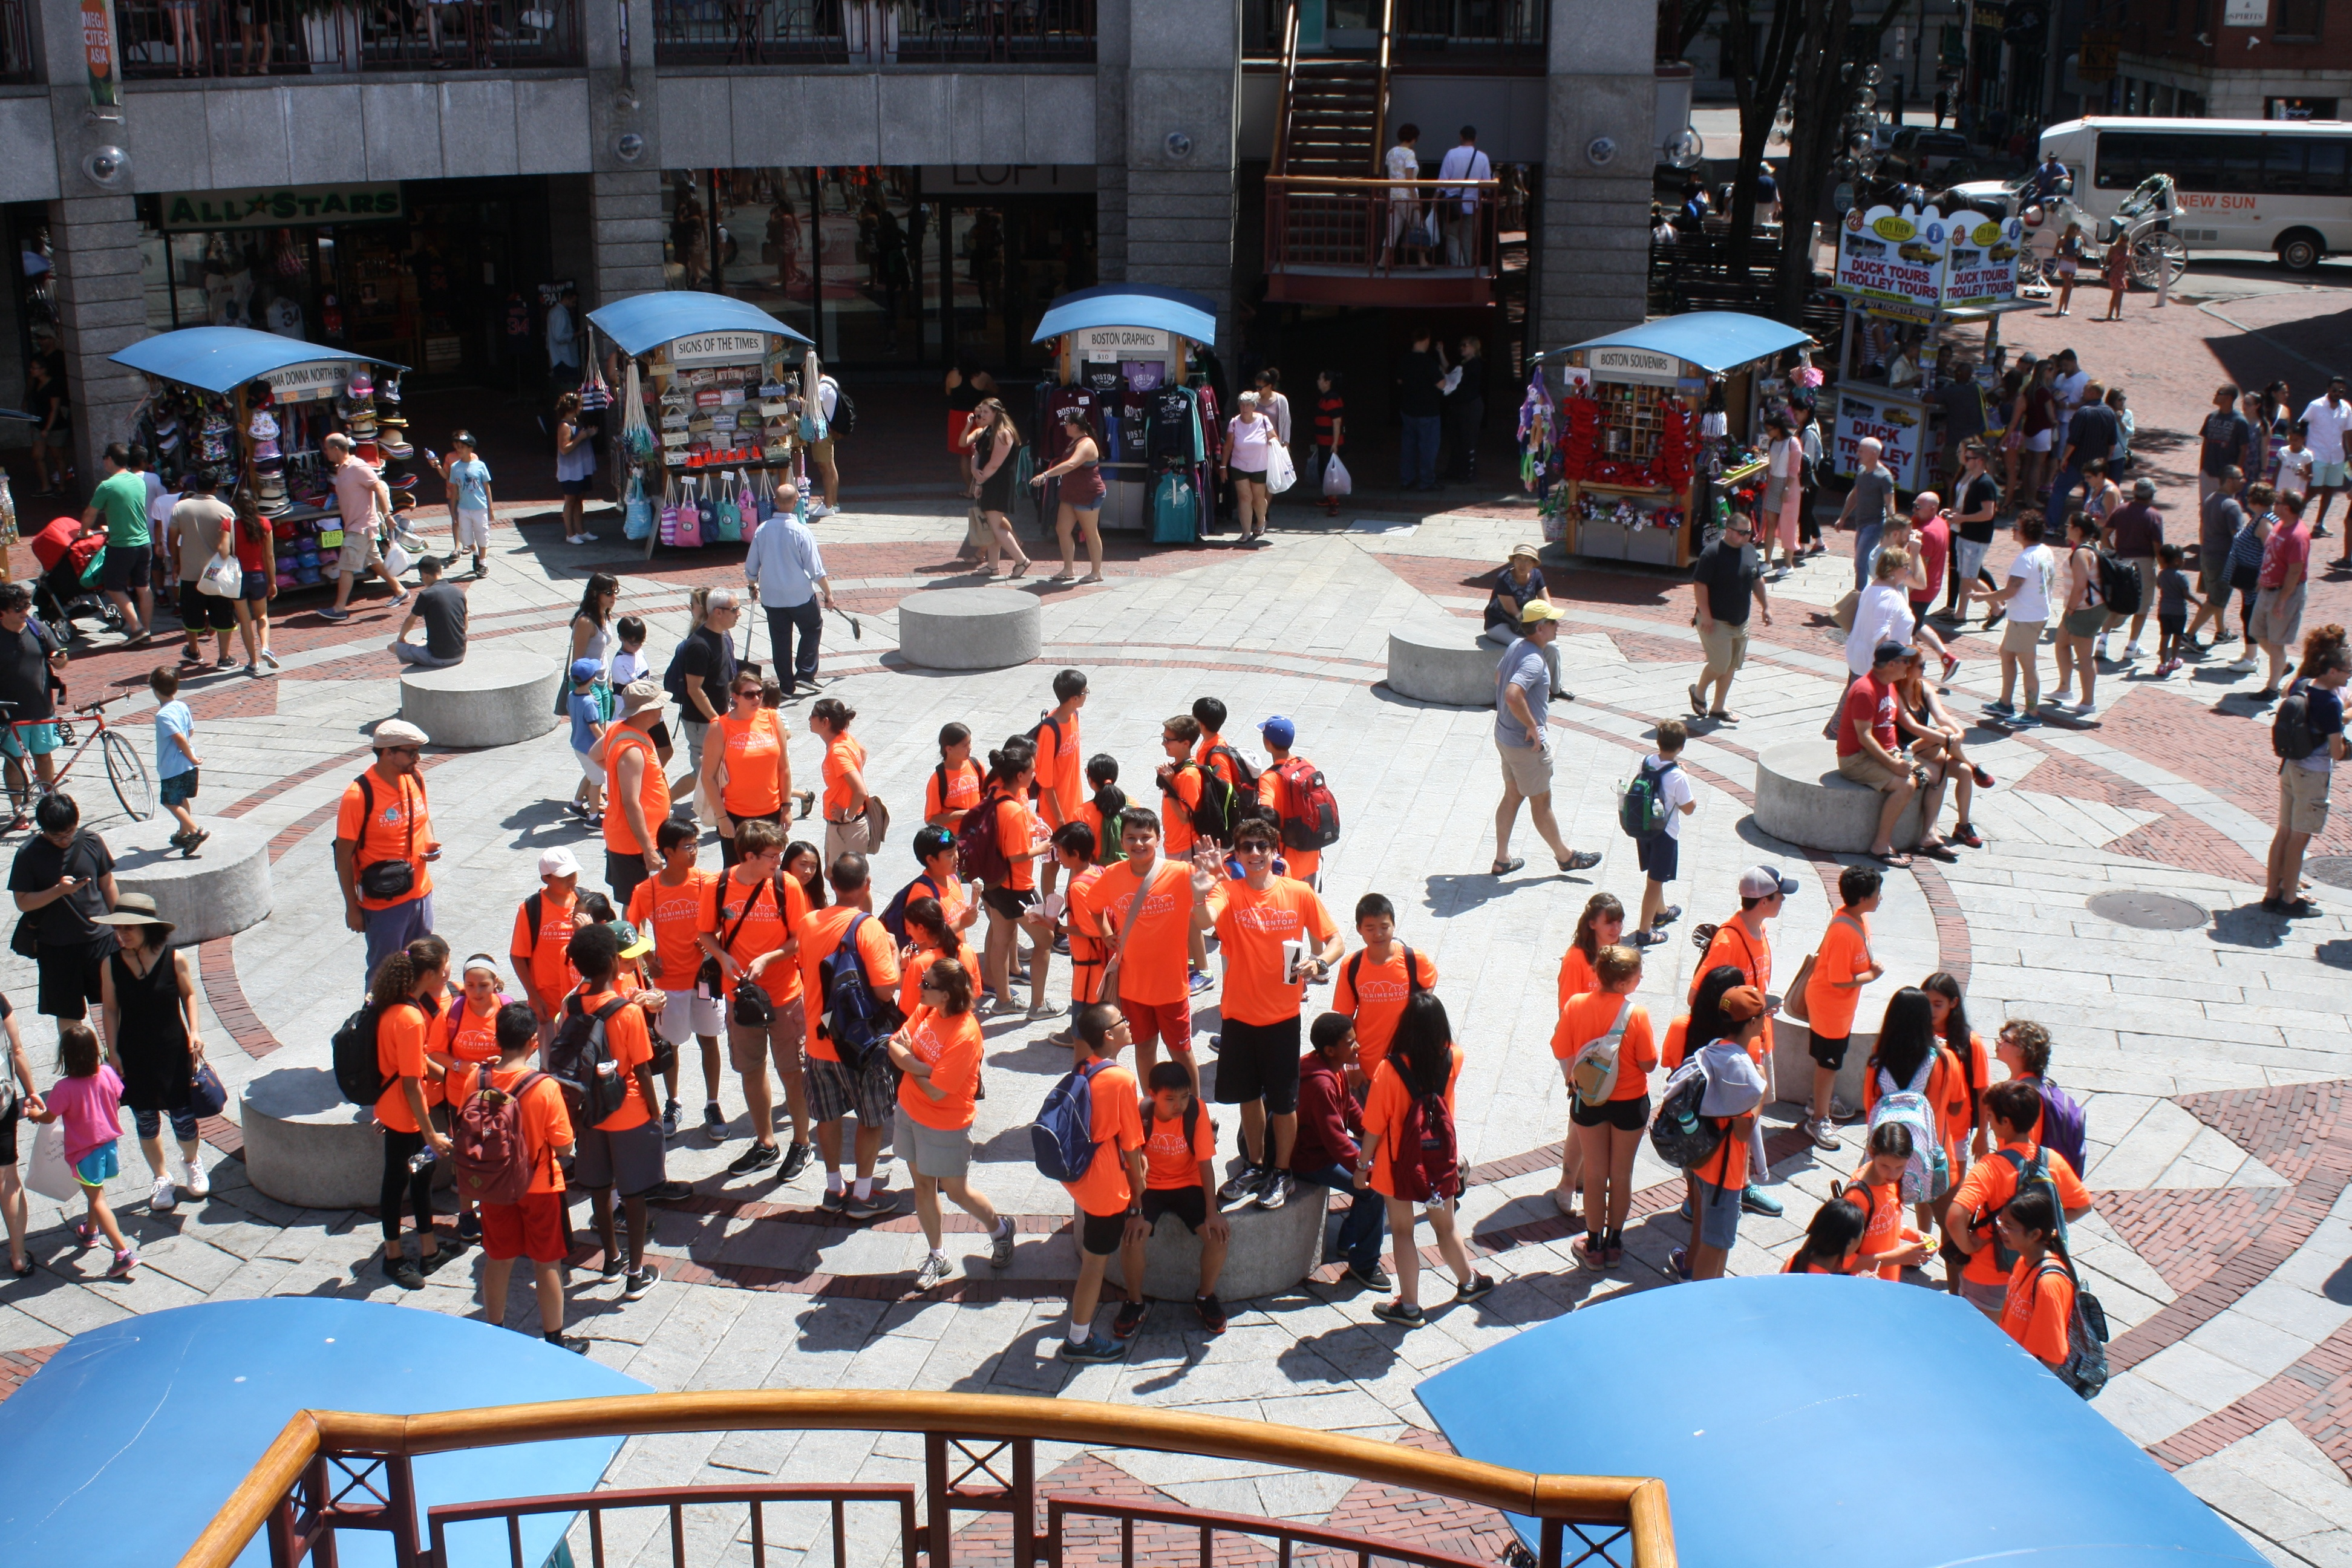 The Experimentory stands out bright orange amidst the mass of humanity in Quincy Market.